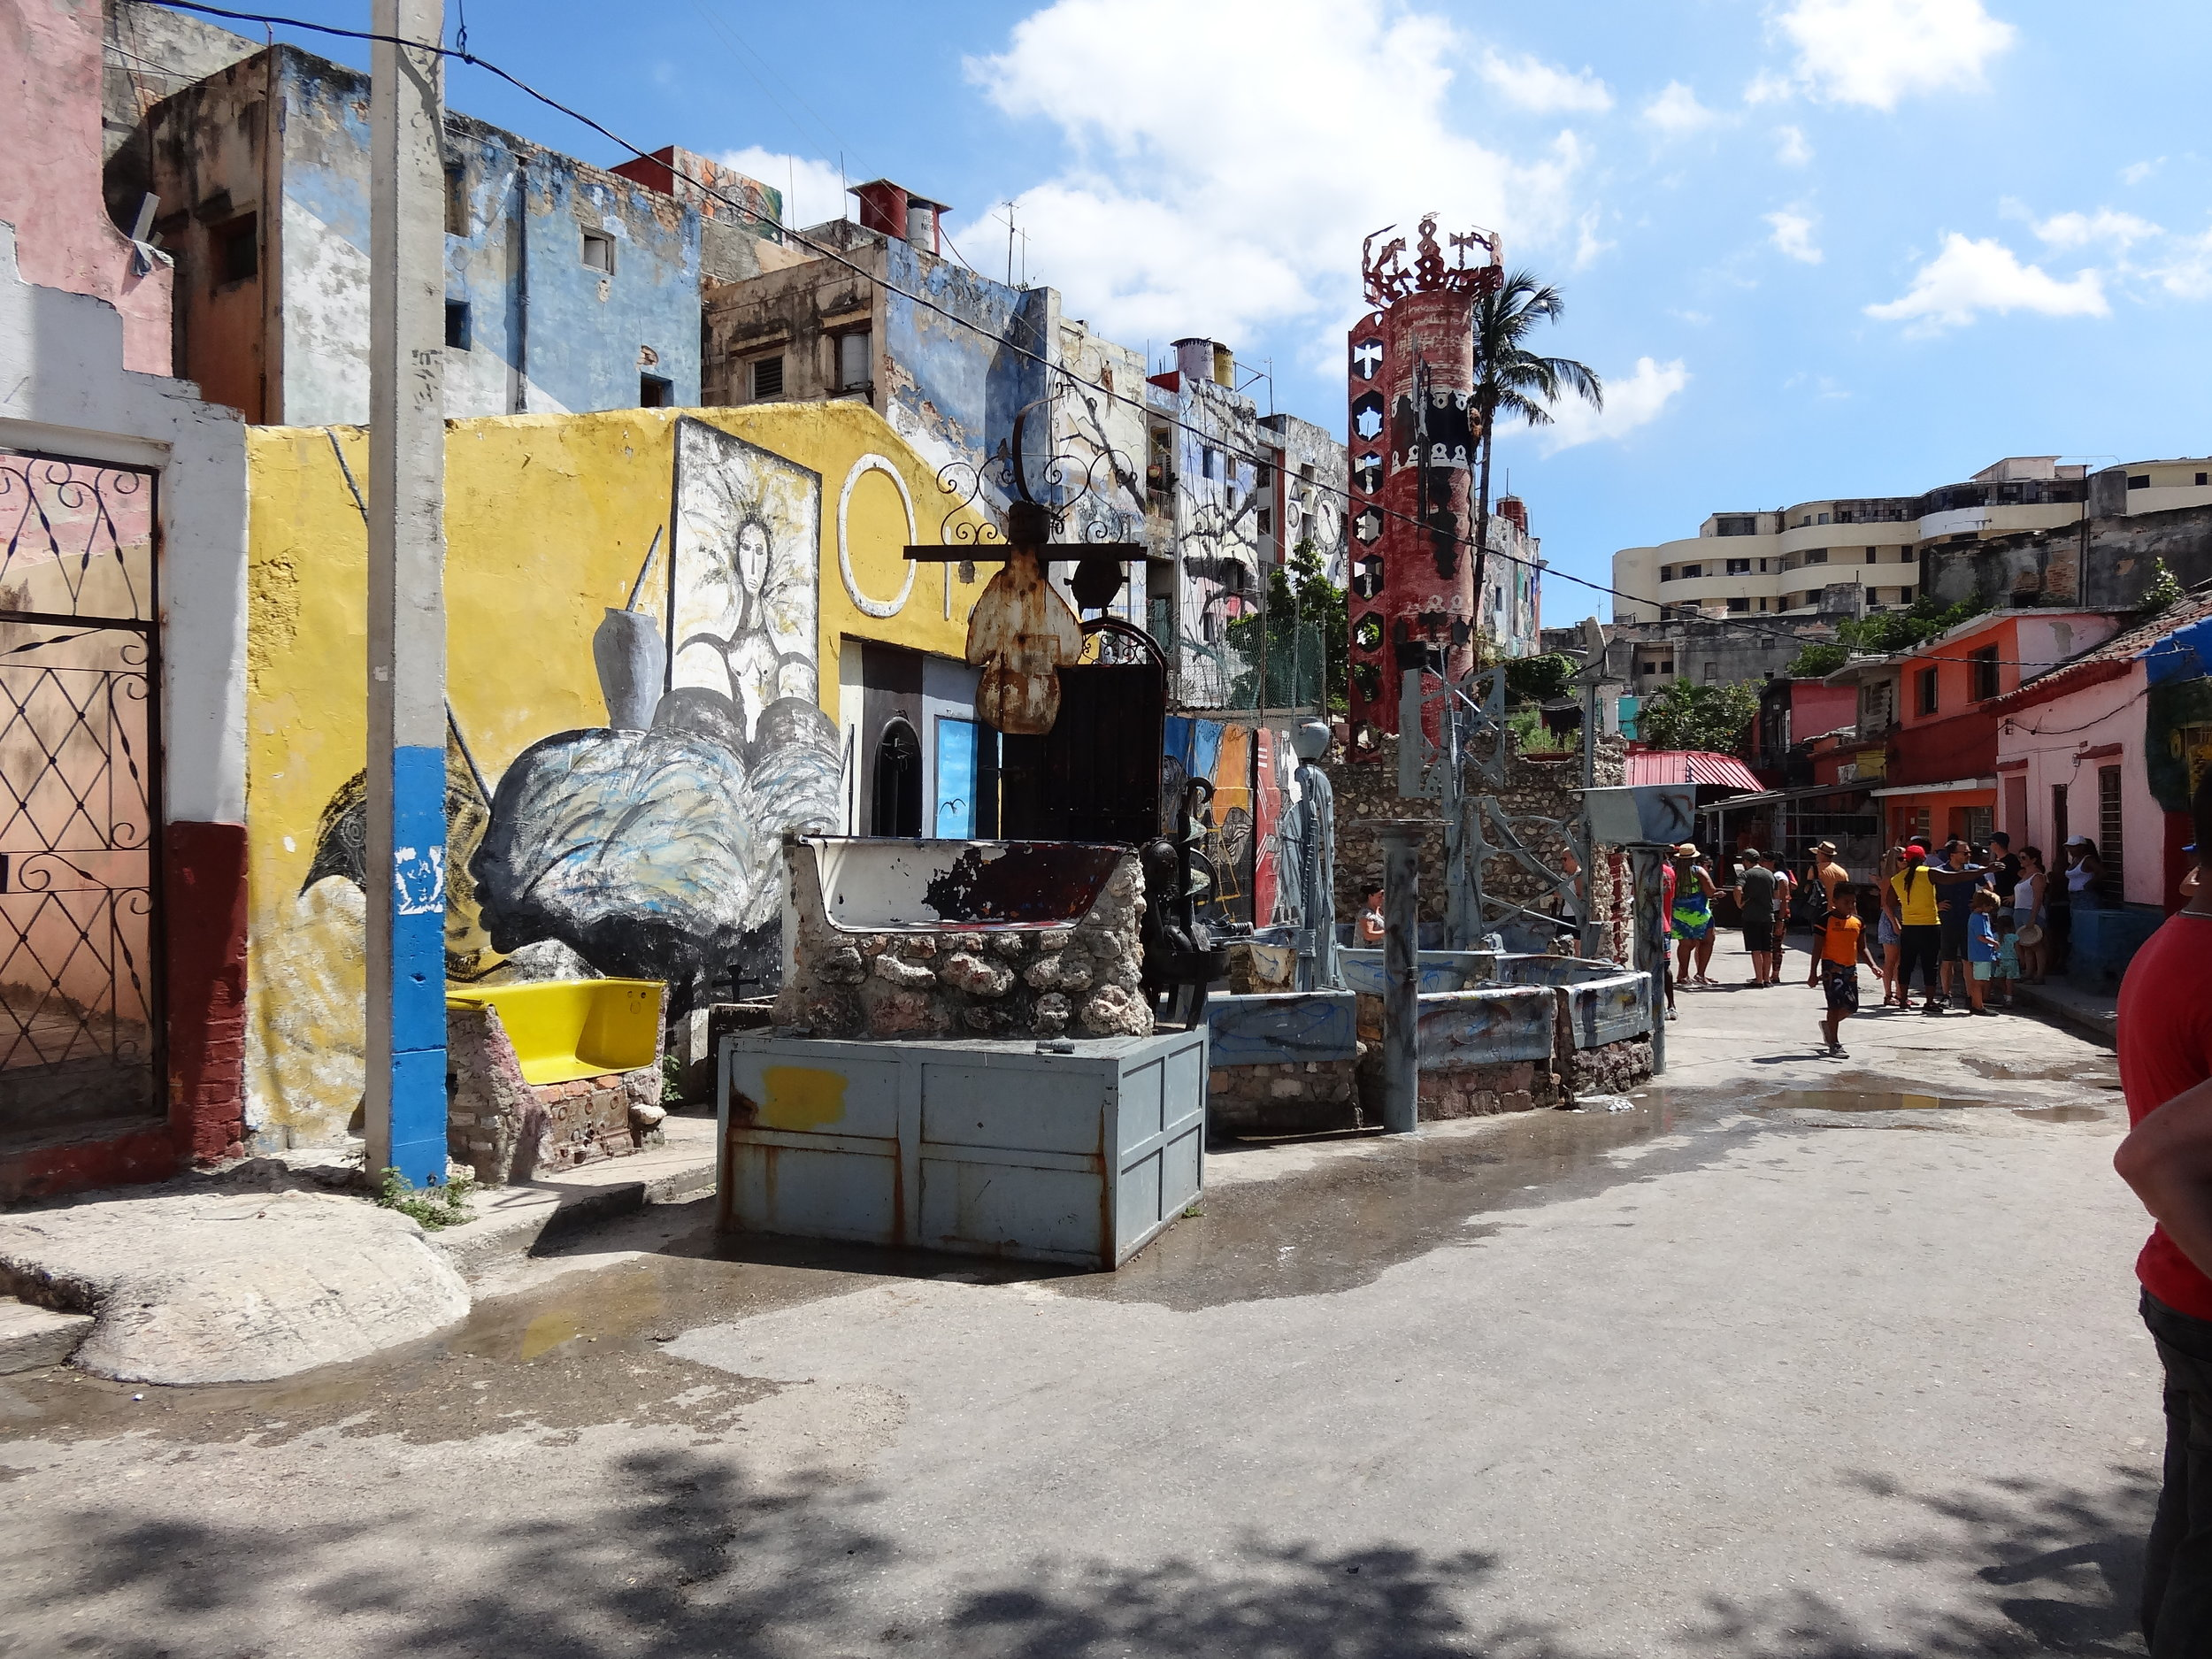 Callejón De Hamel - Go on a guided tour and discuss one of the epicenters of Afro-Cuban art and tradition. Surrounded by houses and buildings covered with large murals in vivid colors, the residents and visitors celebrate the widely-practiced religion of Santería.